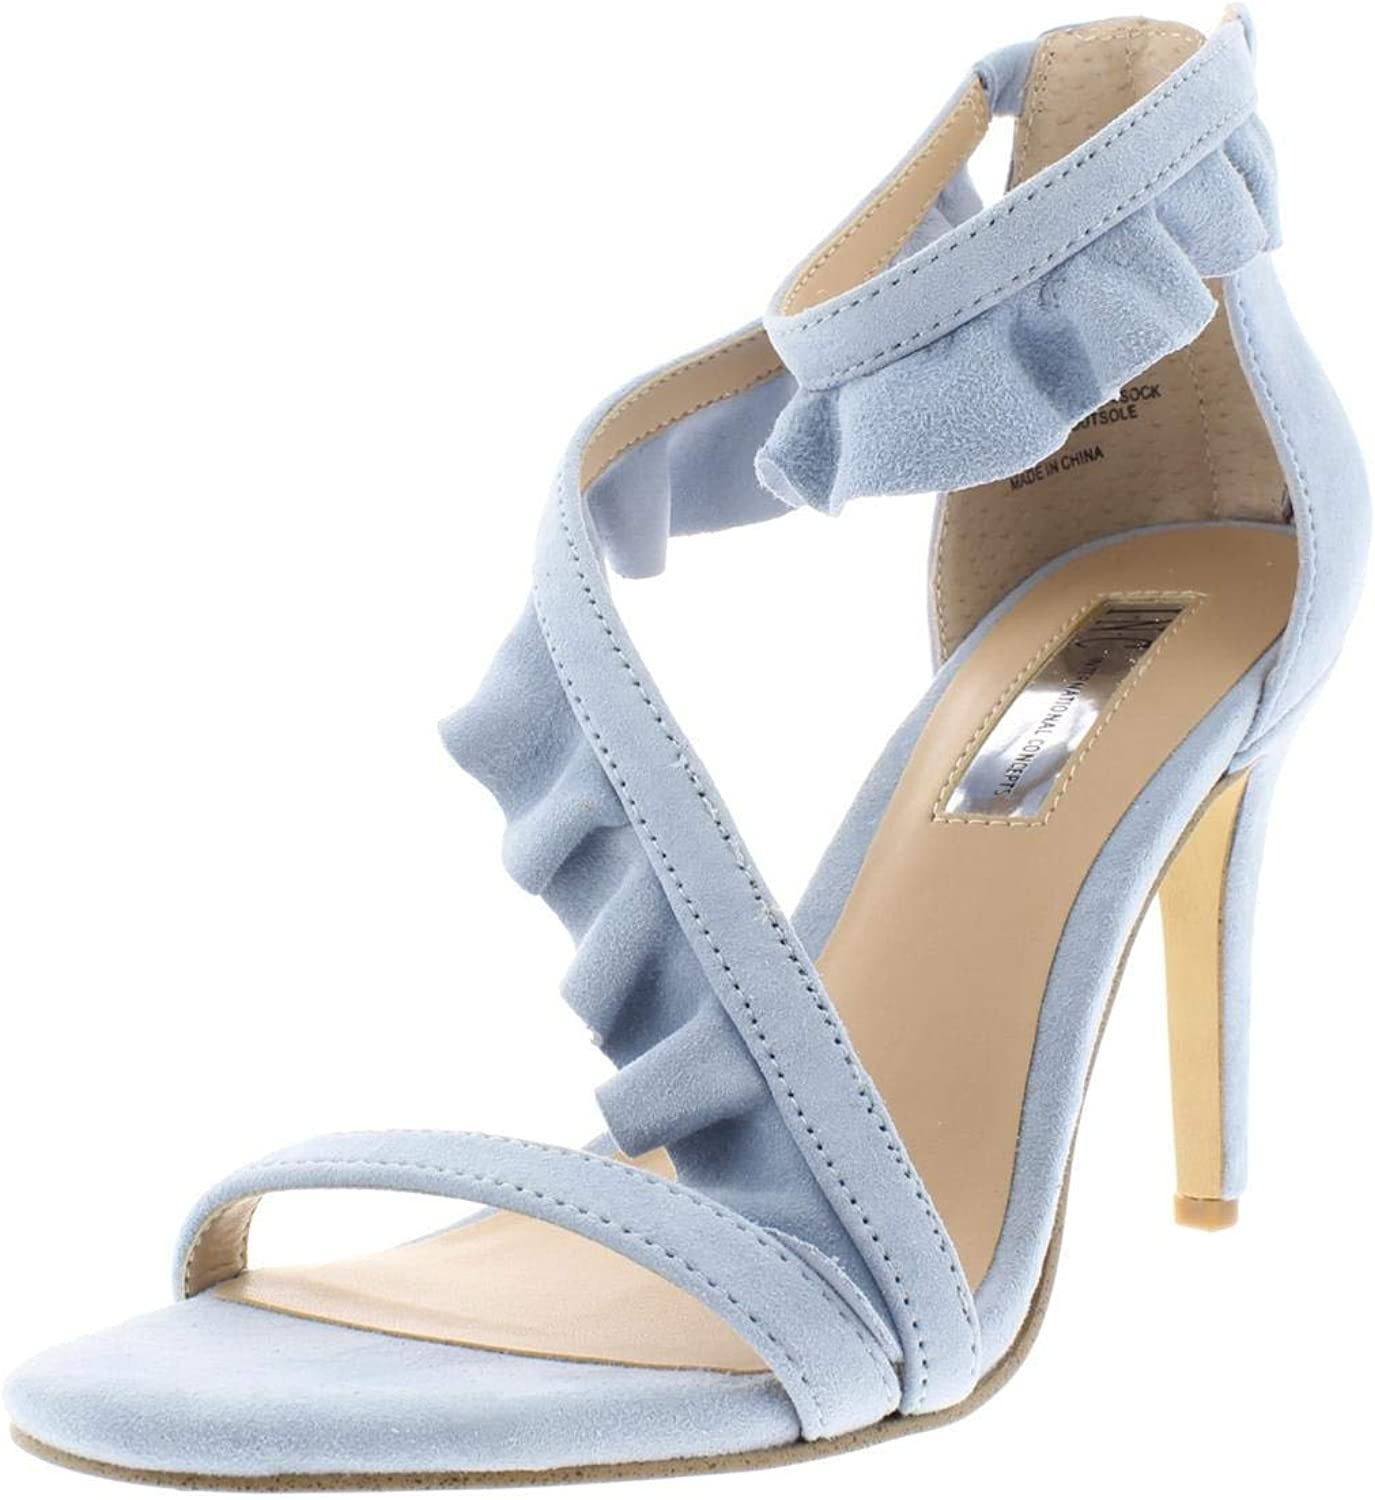 Inc Womens Rezza Suede Heels Dress Sandals bluee 8 Medium (B,M)